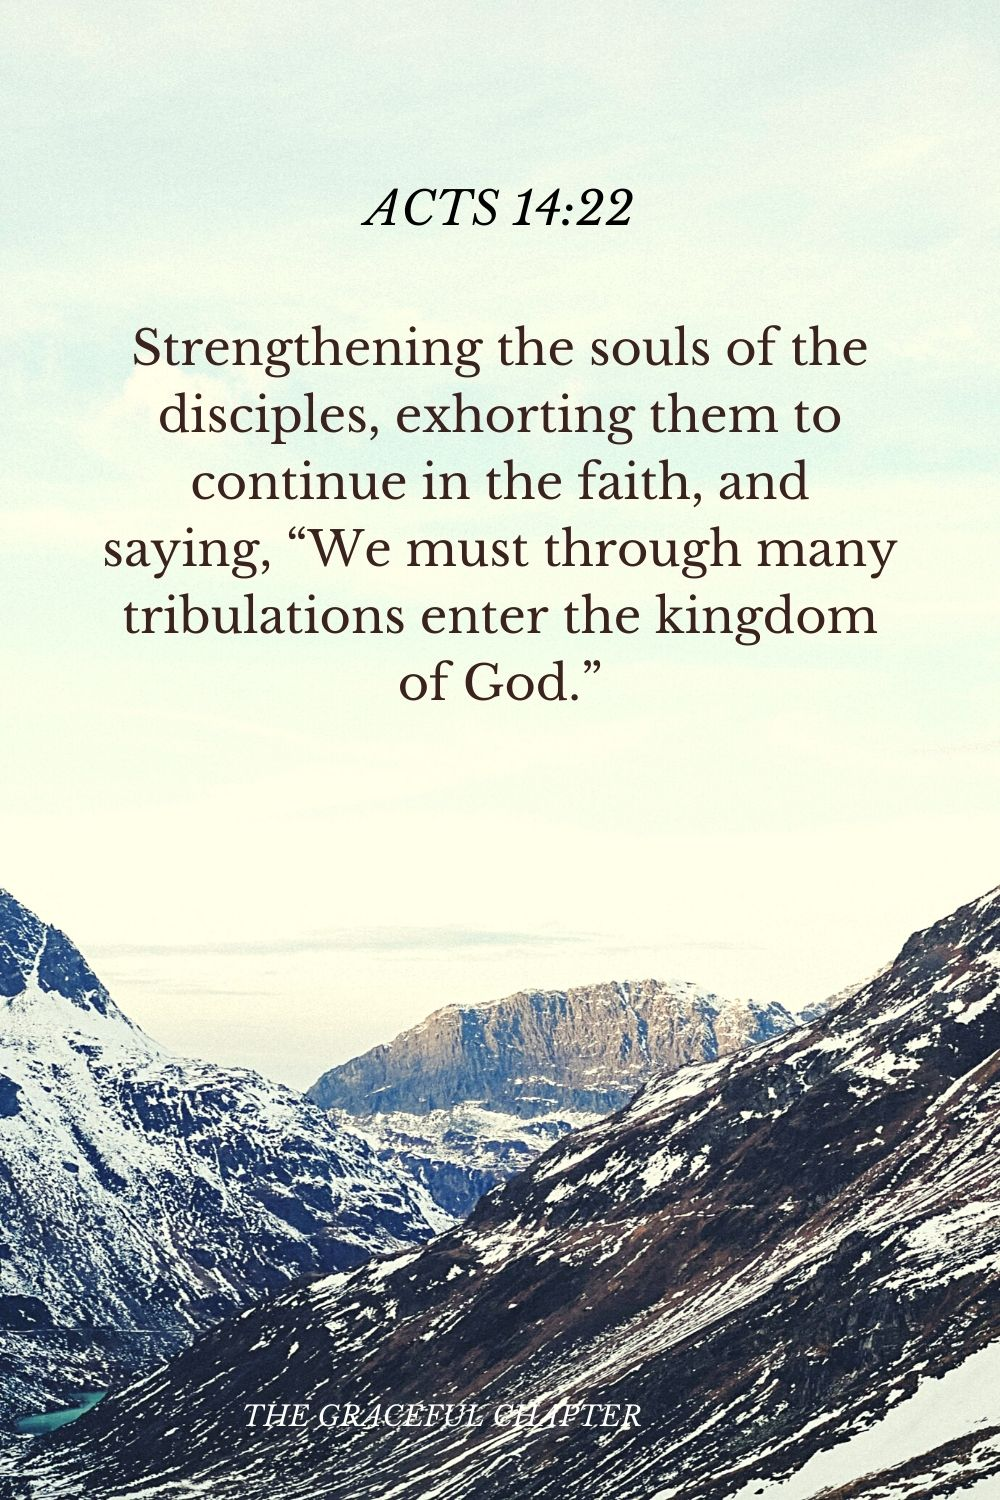 """Strengthening the souls of the disciples, exhorting them to continue in the faith, and saying, """"We must through many tribulations enter the kingdom of God."""" Acts 14:22"""